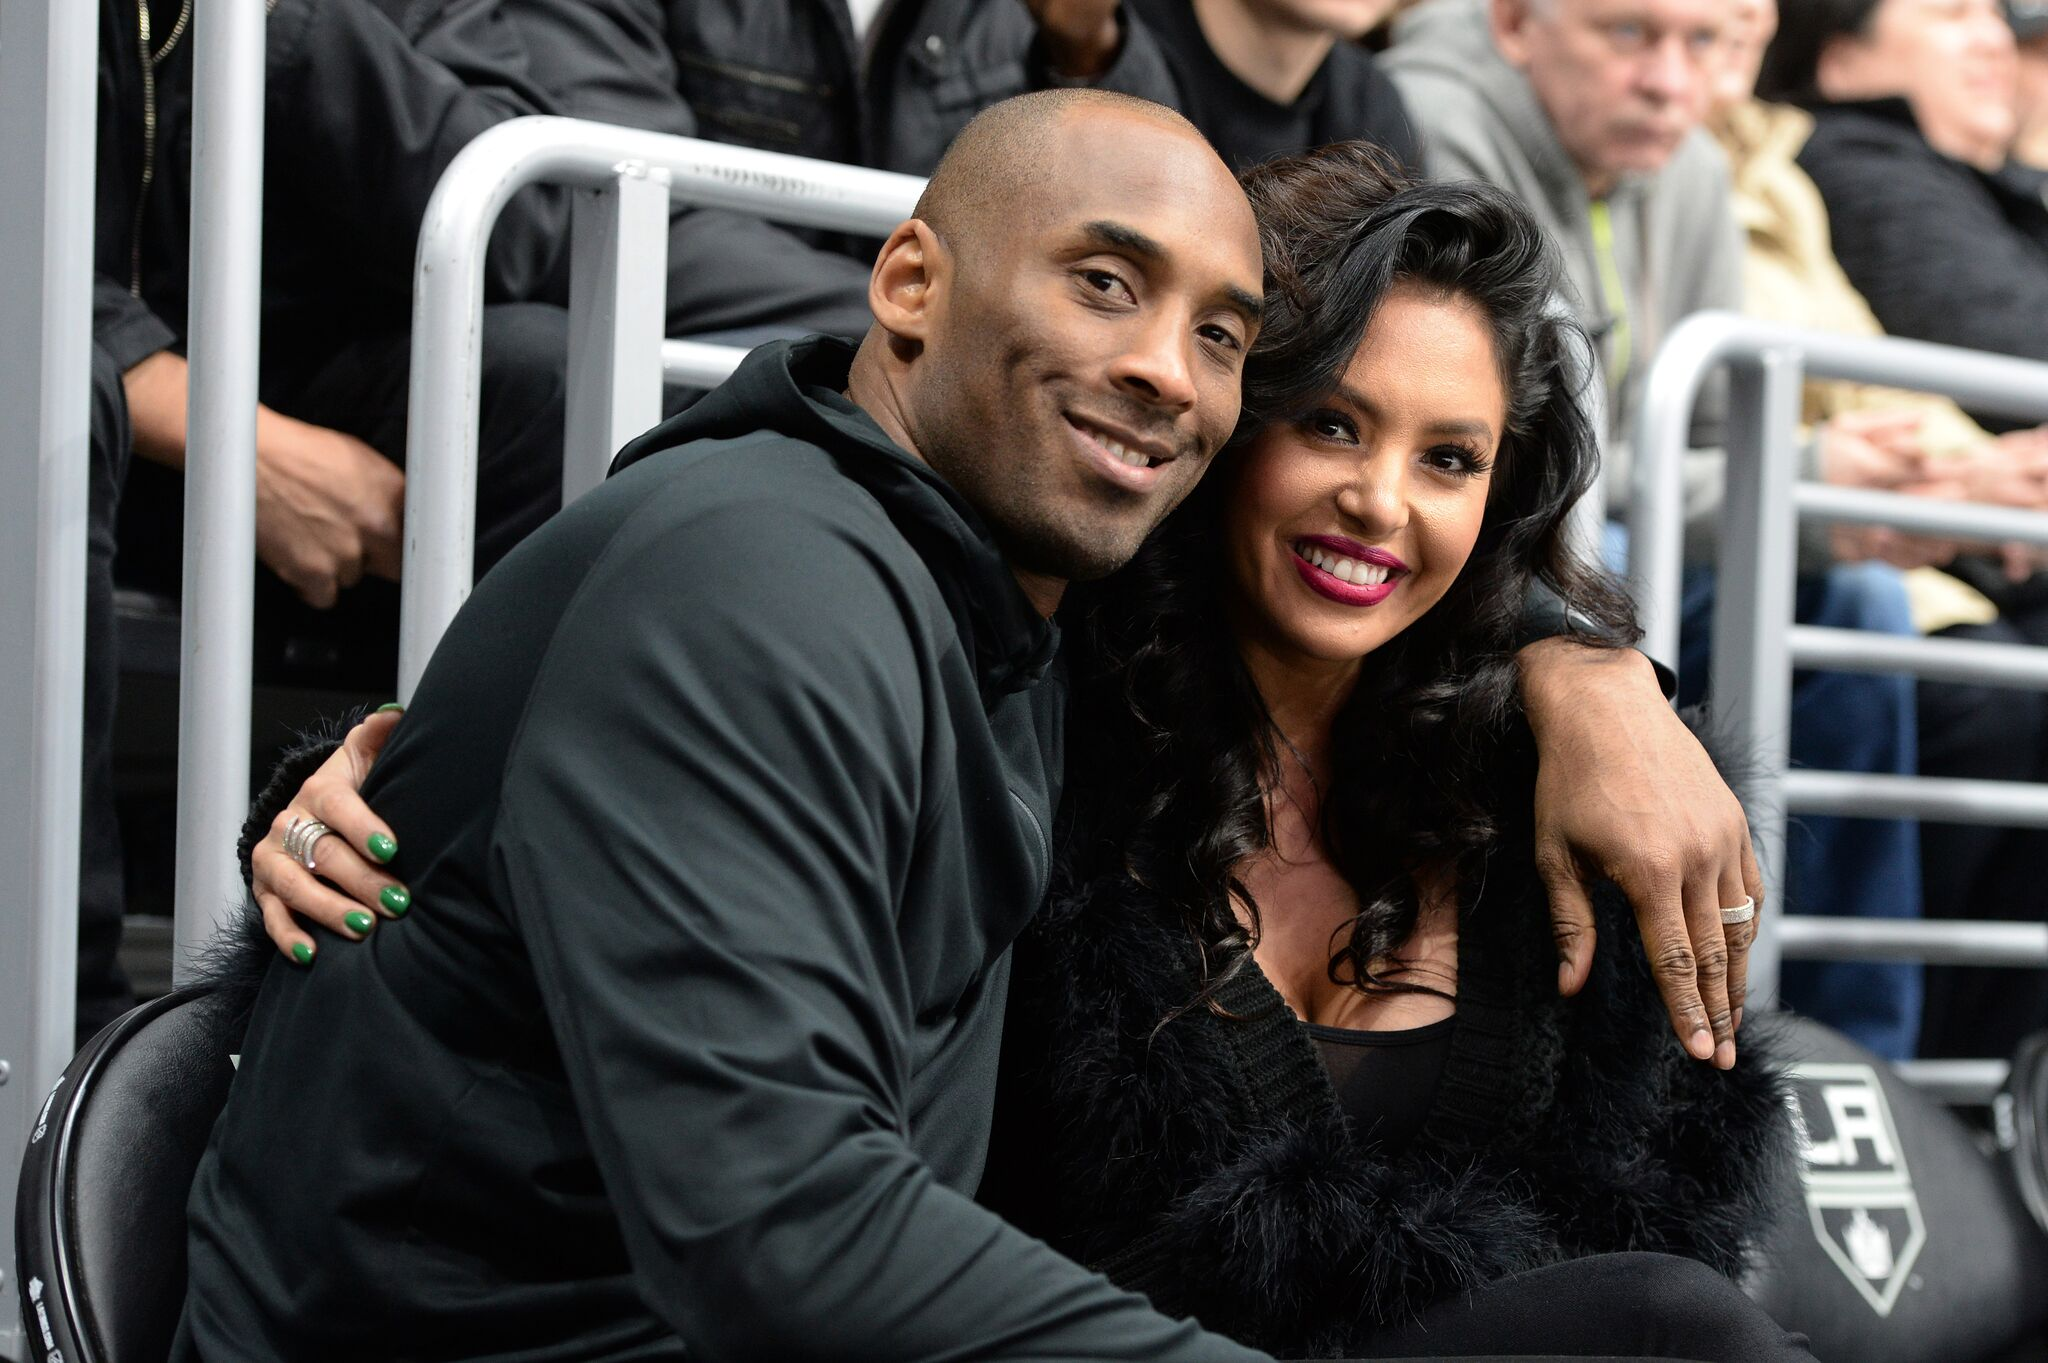 Los Angeles Lakers Guard Kobe Bryant and his wife Vanessa Bryant pose for a photo during a game between the Los Angeles Kings and the Washington Capitals at STAPLES Center  | Getty Images / Global Images Ukraine